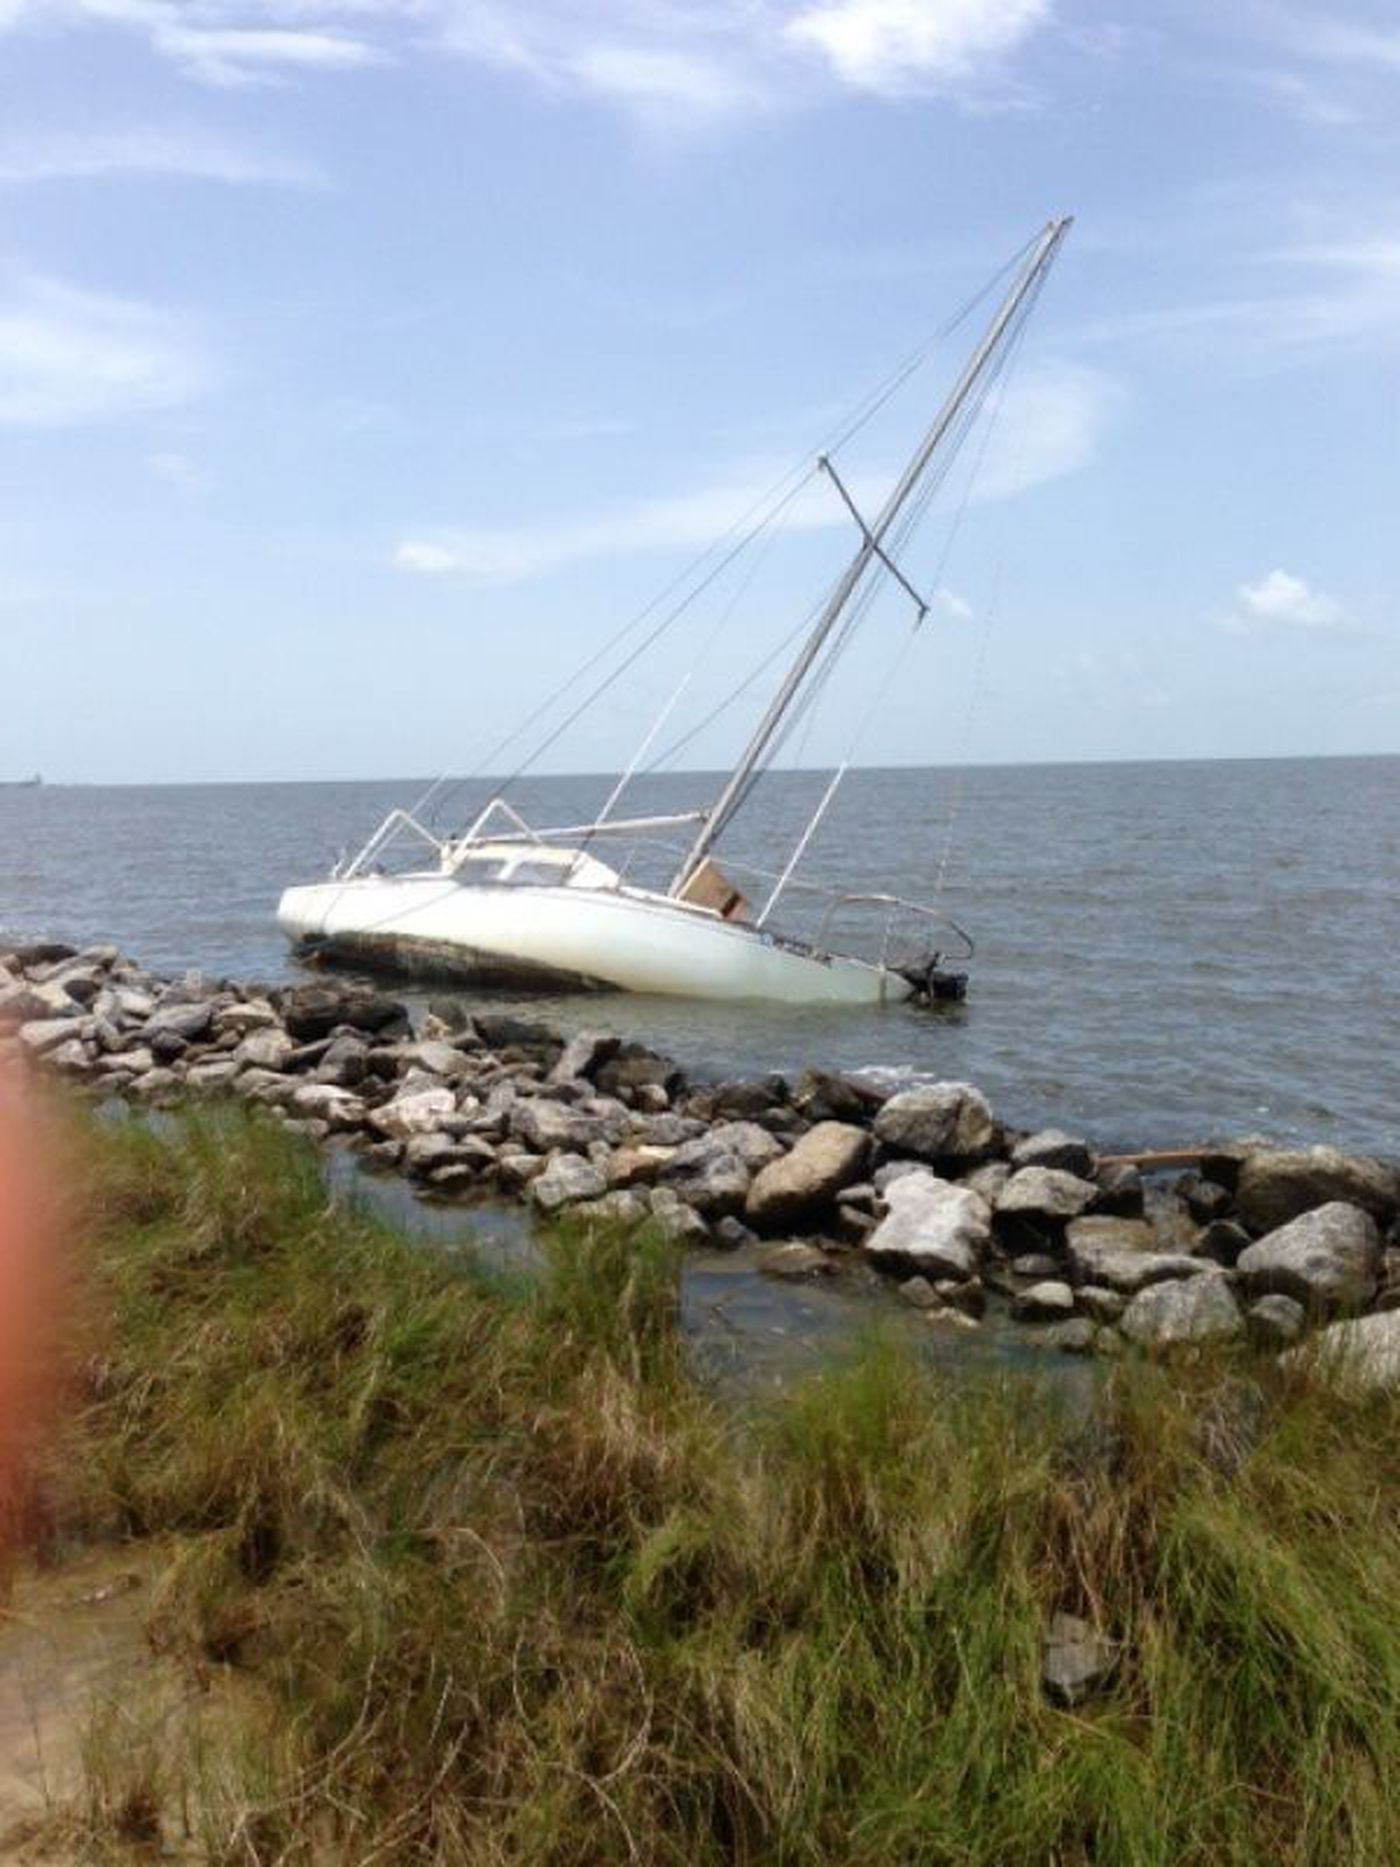 Authorities investigating abandoned boat in Pascagoula